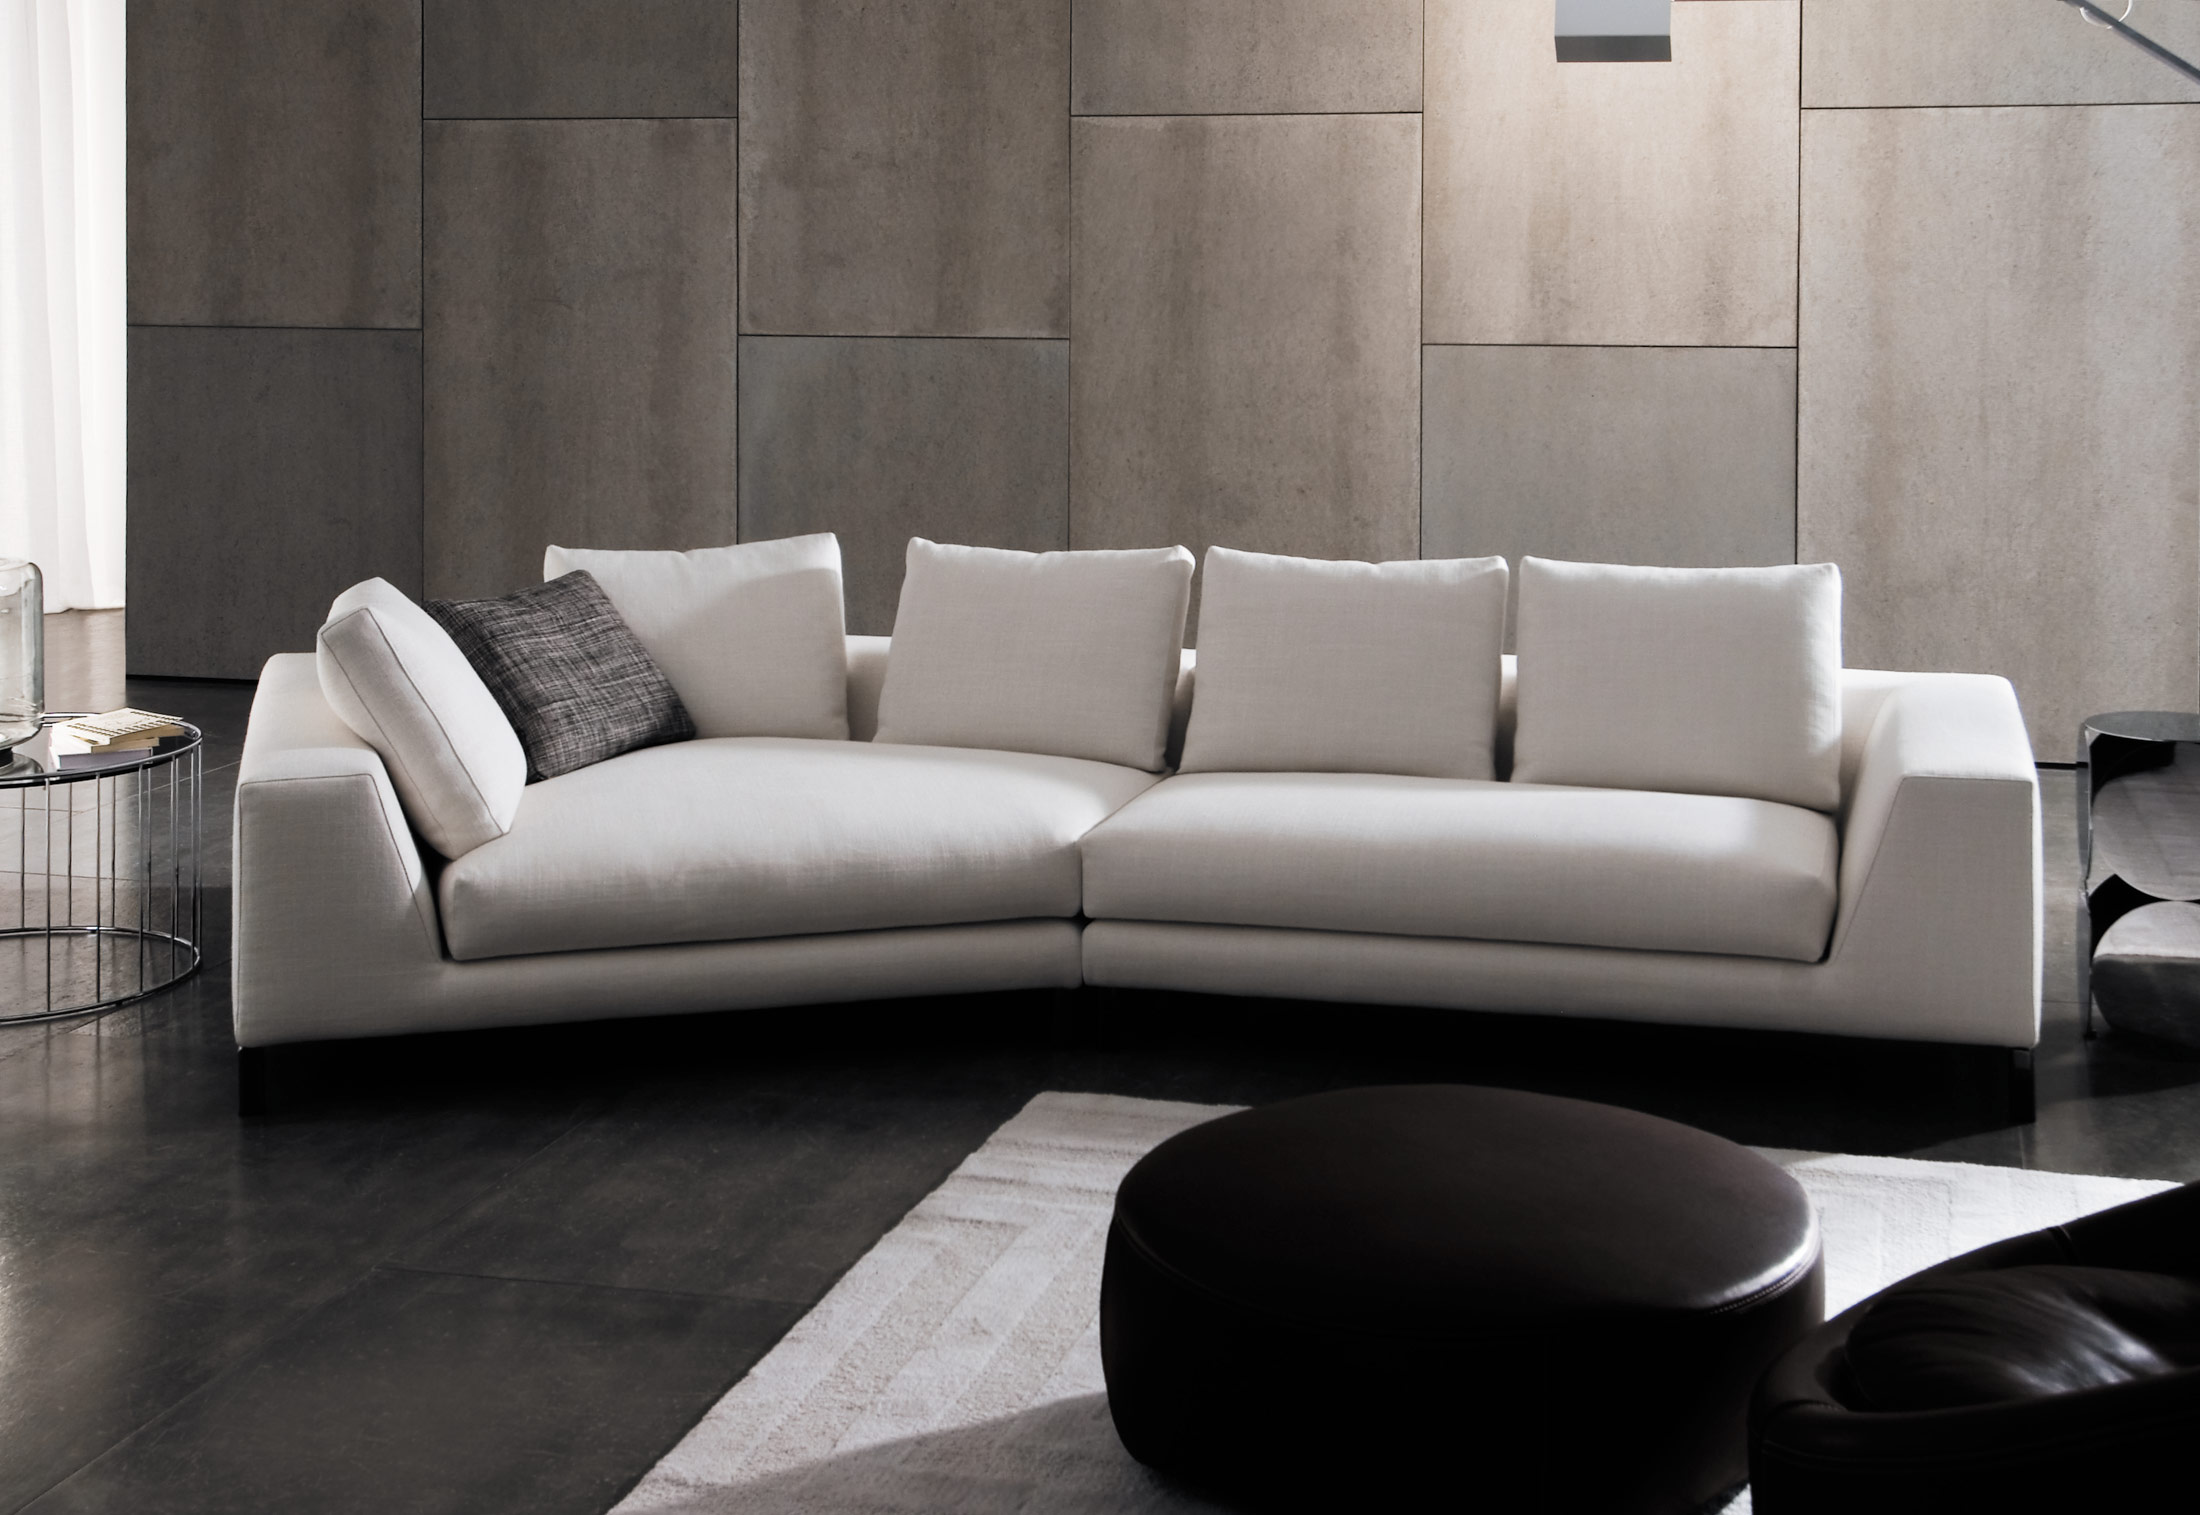 Full Size of Minotti Sofa Used For Sale Alexander Dimensions Sleeper India Range Hamilton Islands By Stylepark Arten Led Hülsta Big L Form Grau Stoff Weiß Natura Bora Sofa Minotti Sofa